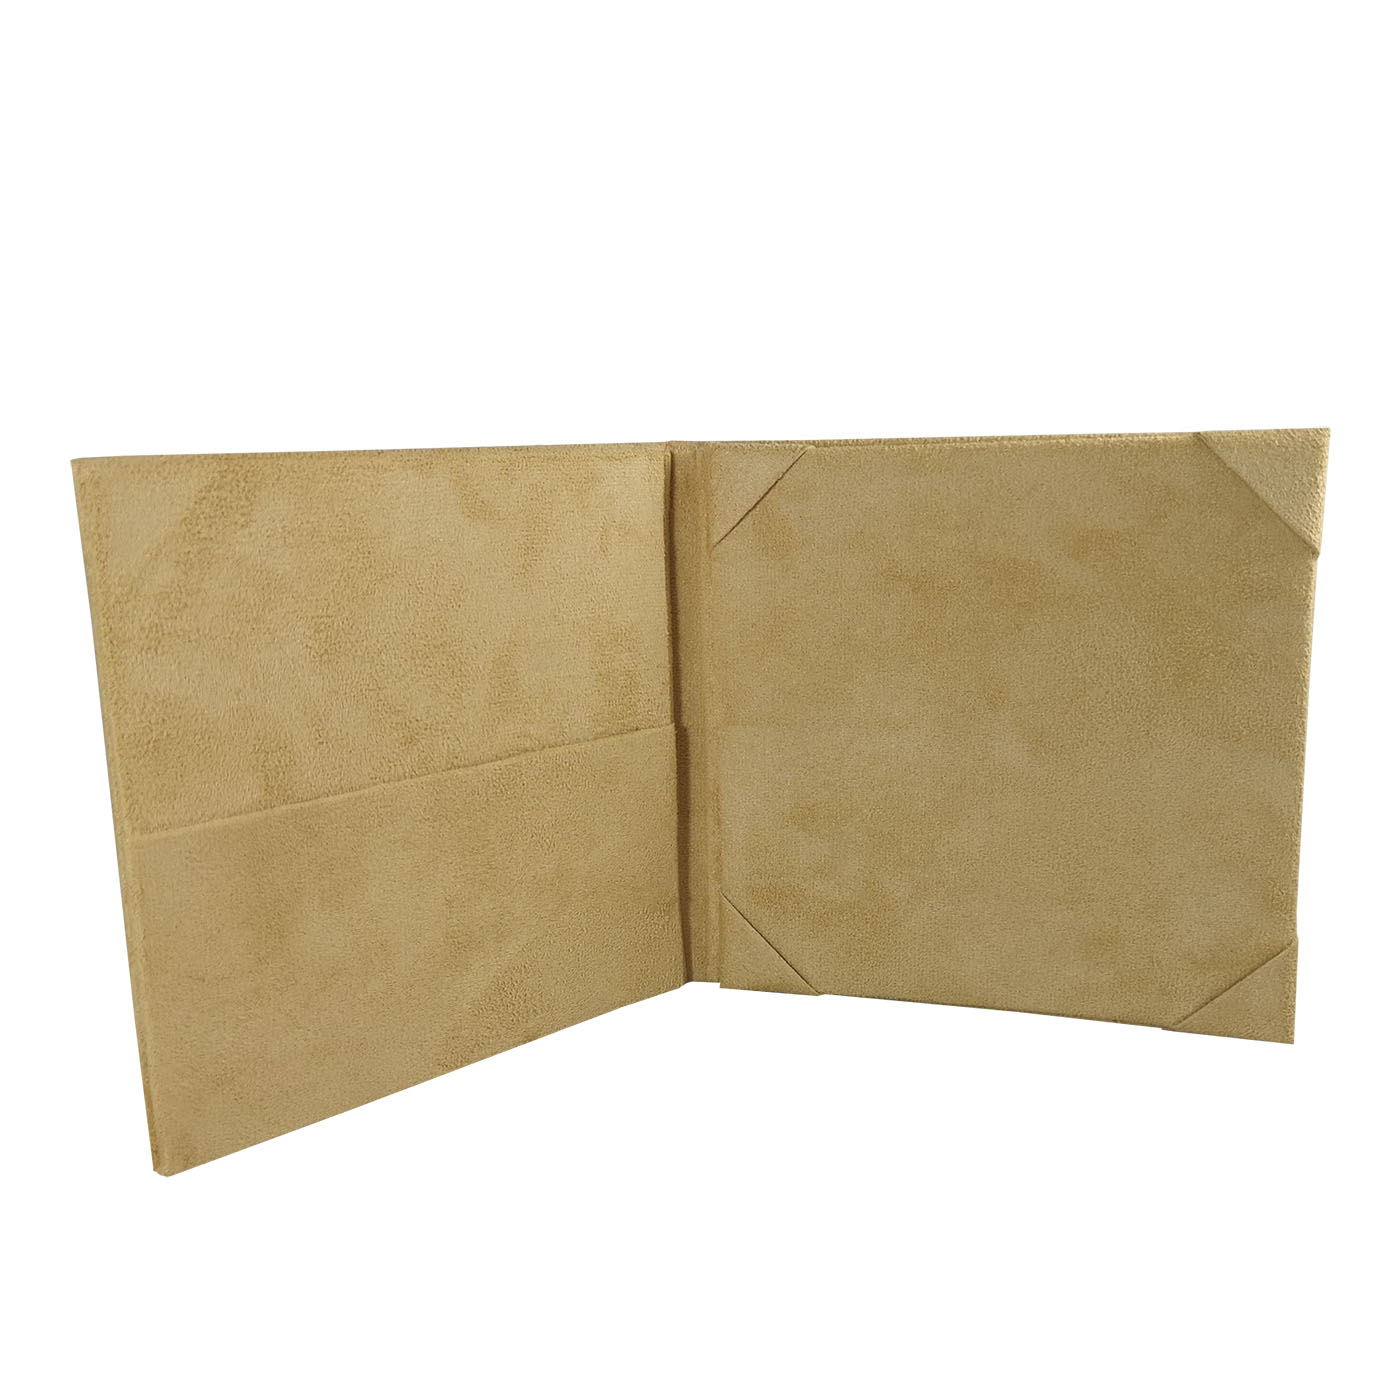 suede folder for wedding invitation cards